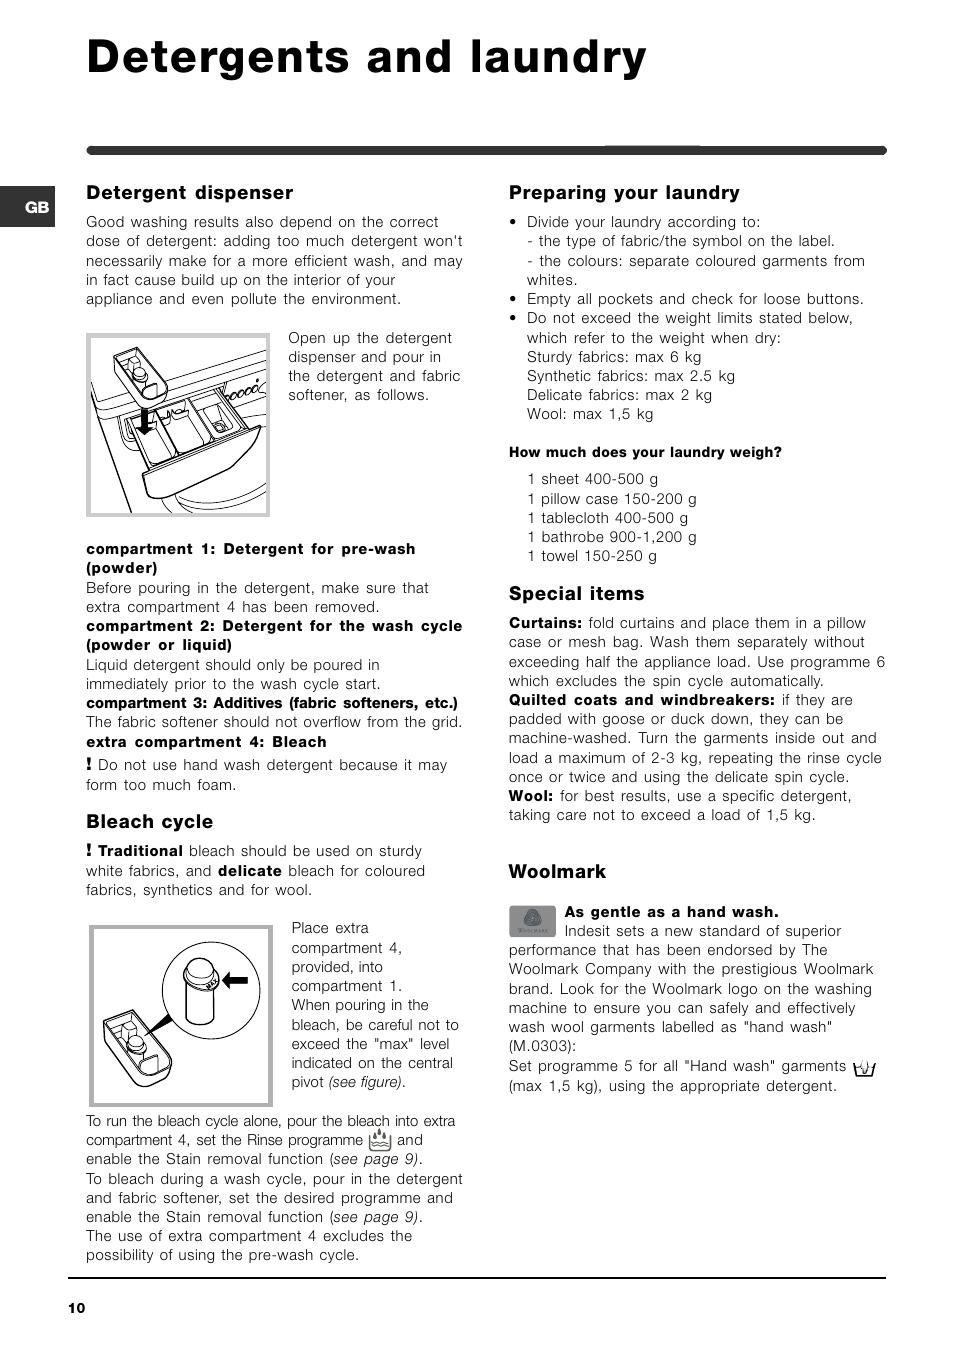 Detergents and laundry indesit wixe 127 user manual page 10 16 buycottarizona Choice Image